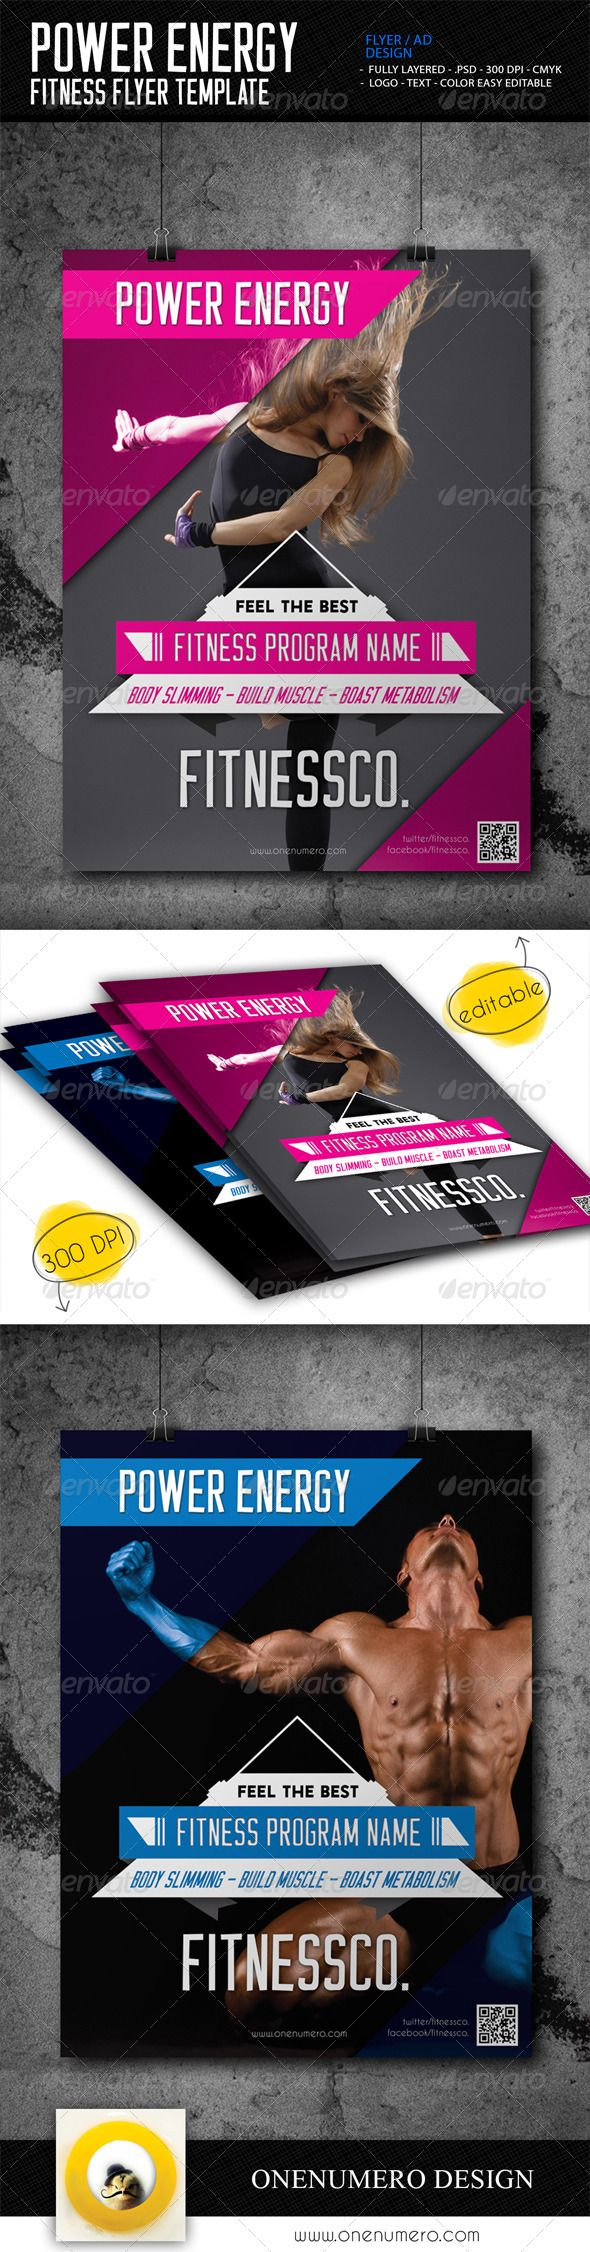 Power Energy Fitness Flyer Template - Sports Events Maybe buy it http://graphicriver.net/item/power-energy-fitness-flyer-template/7662781?WT.ac=portfolio&WT.seg_1=portfolio&WT.z_author=onenumero